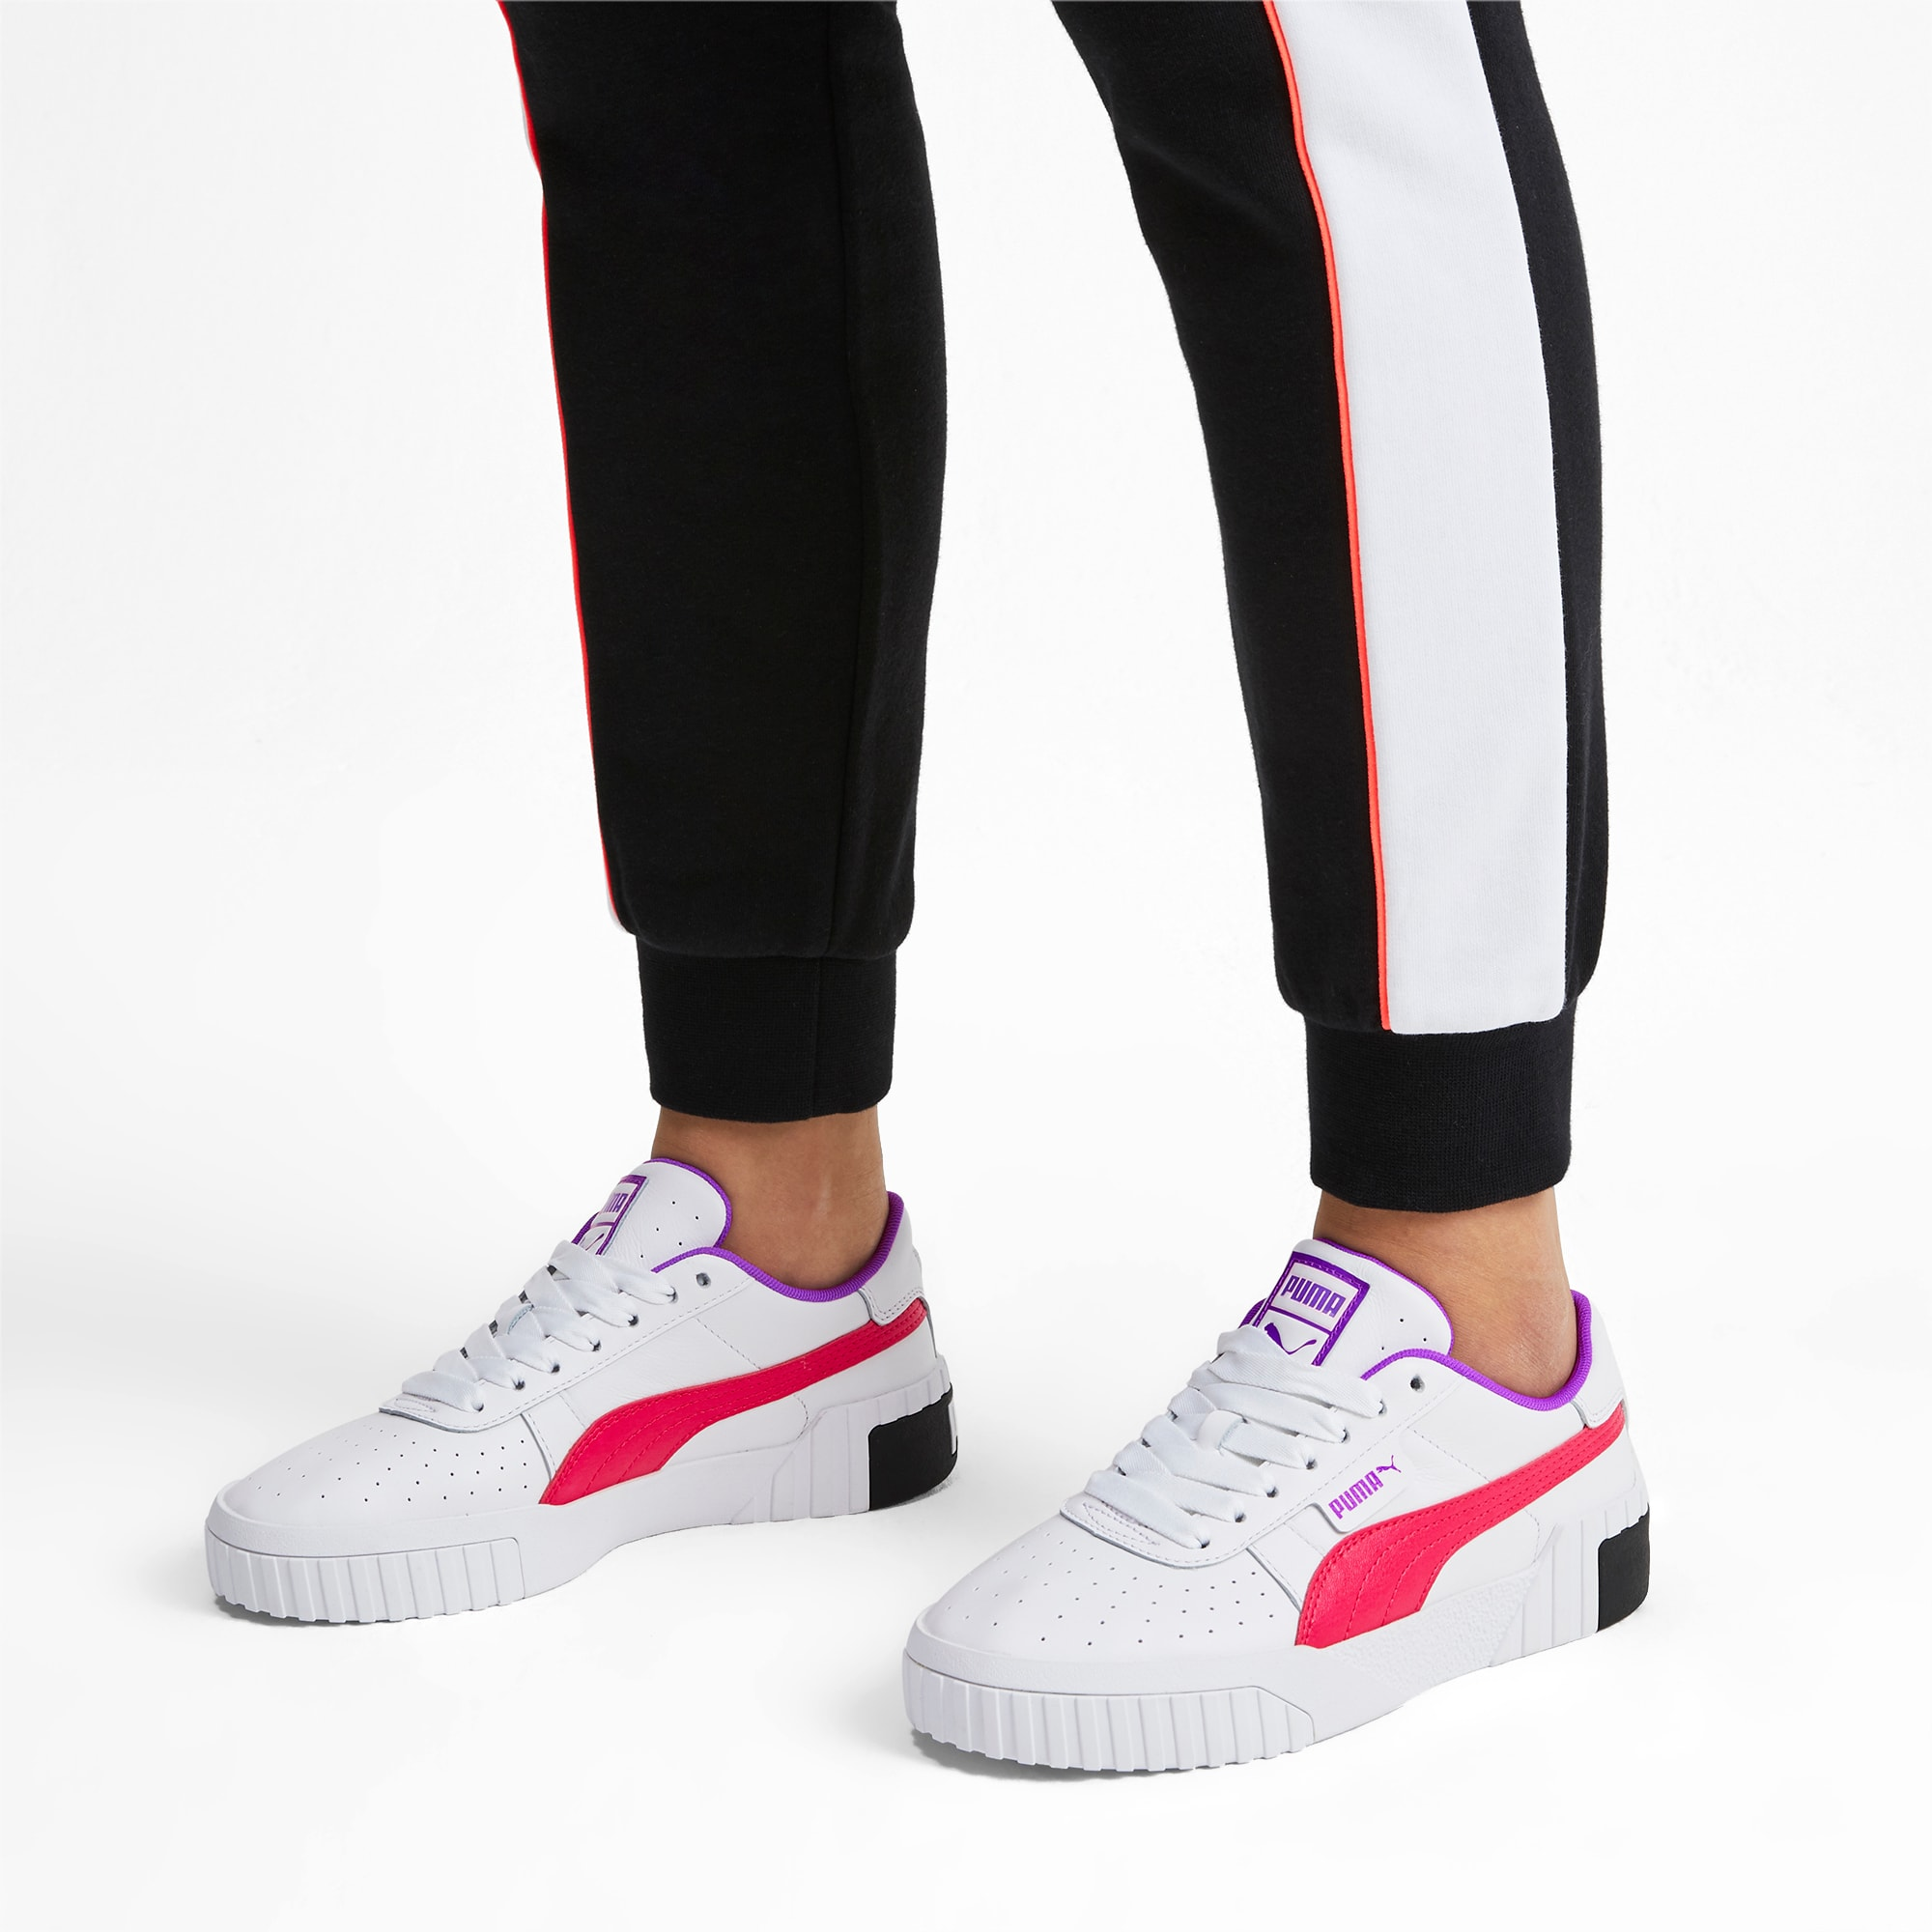 Cali Chase Women's Sneakers